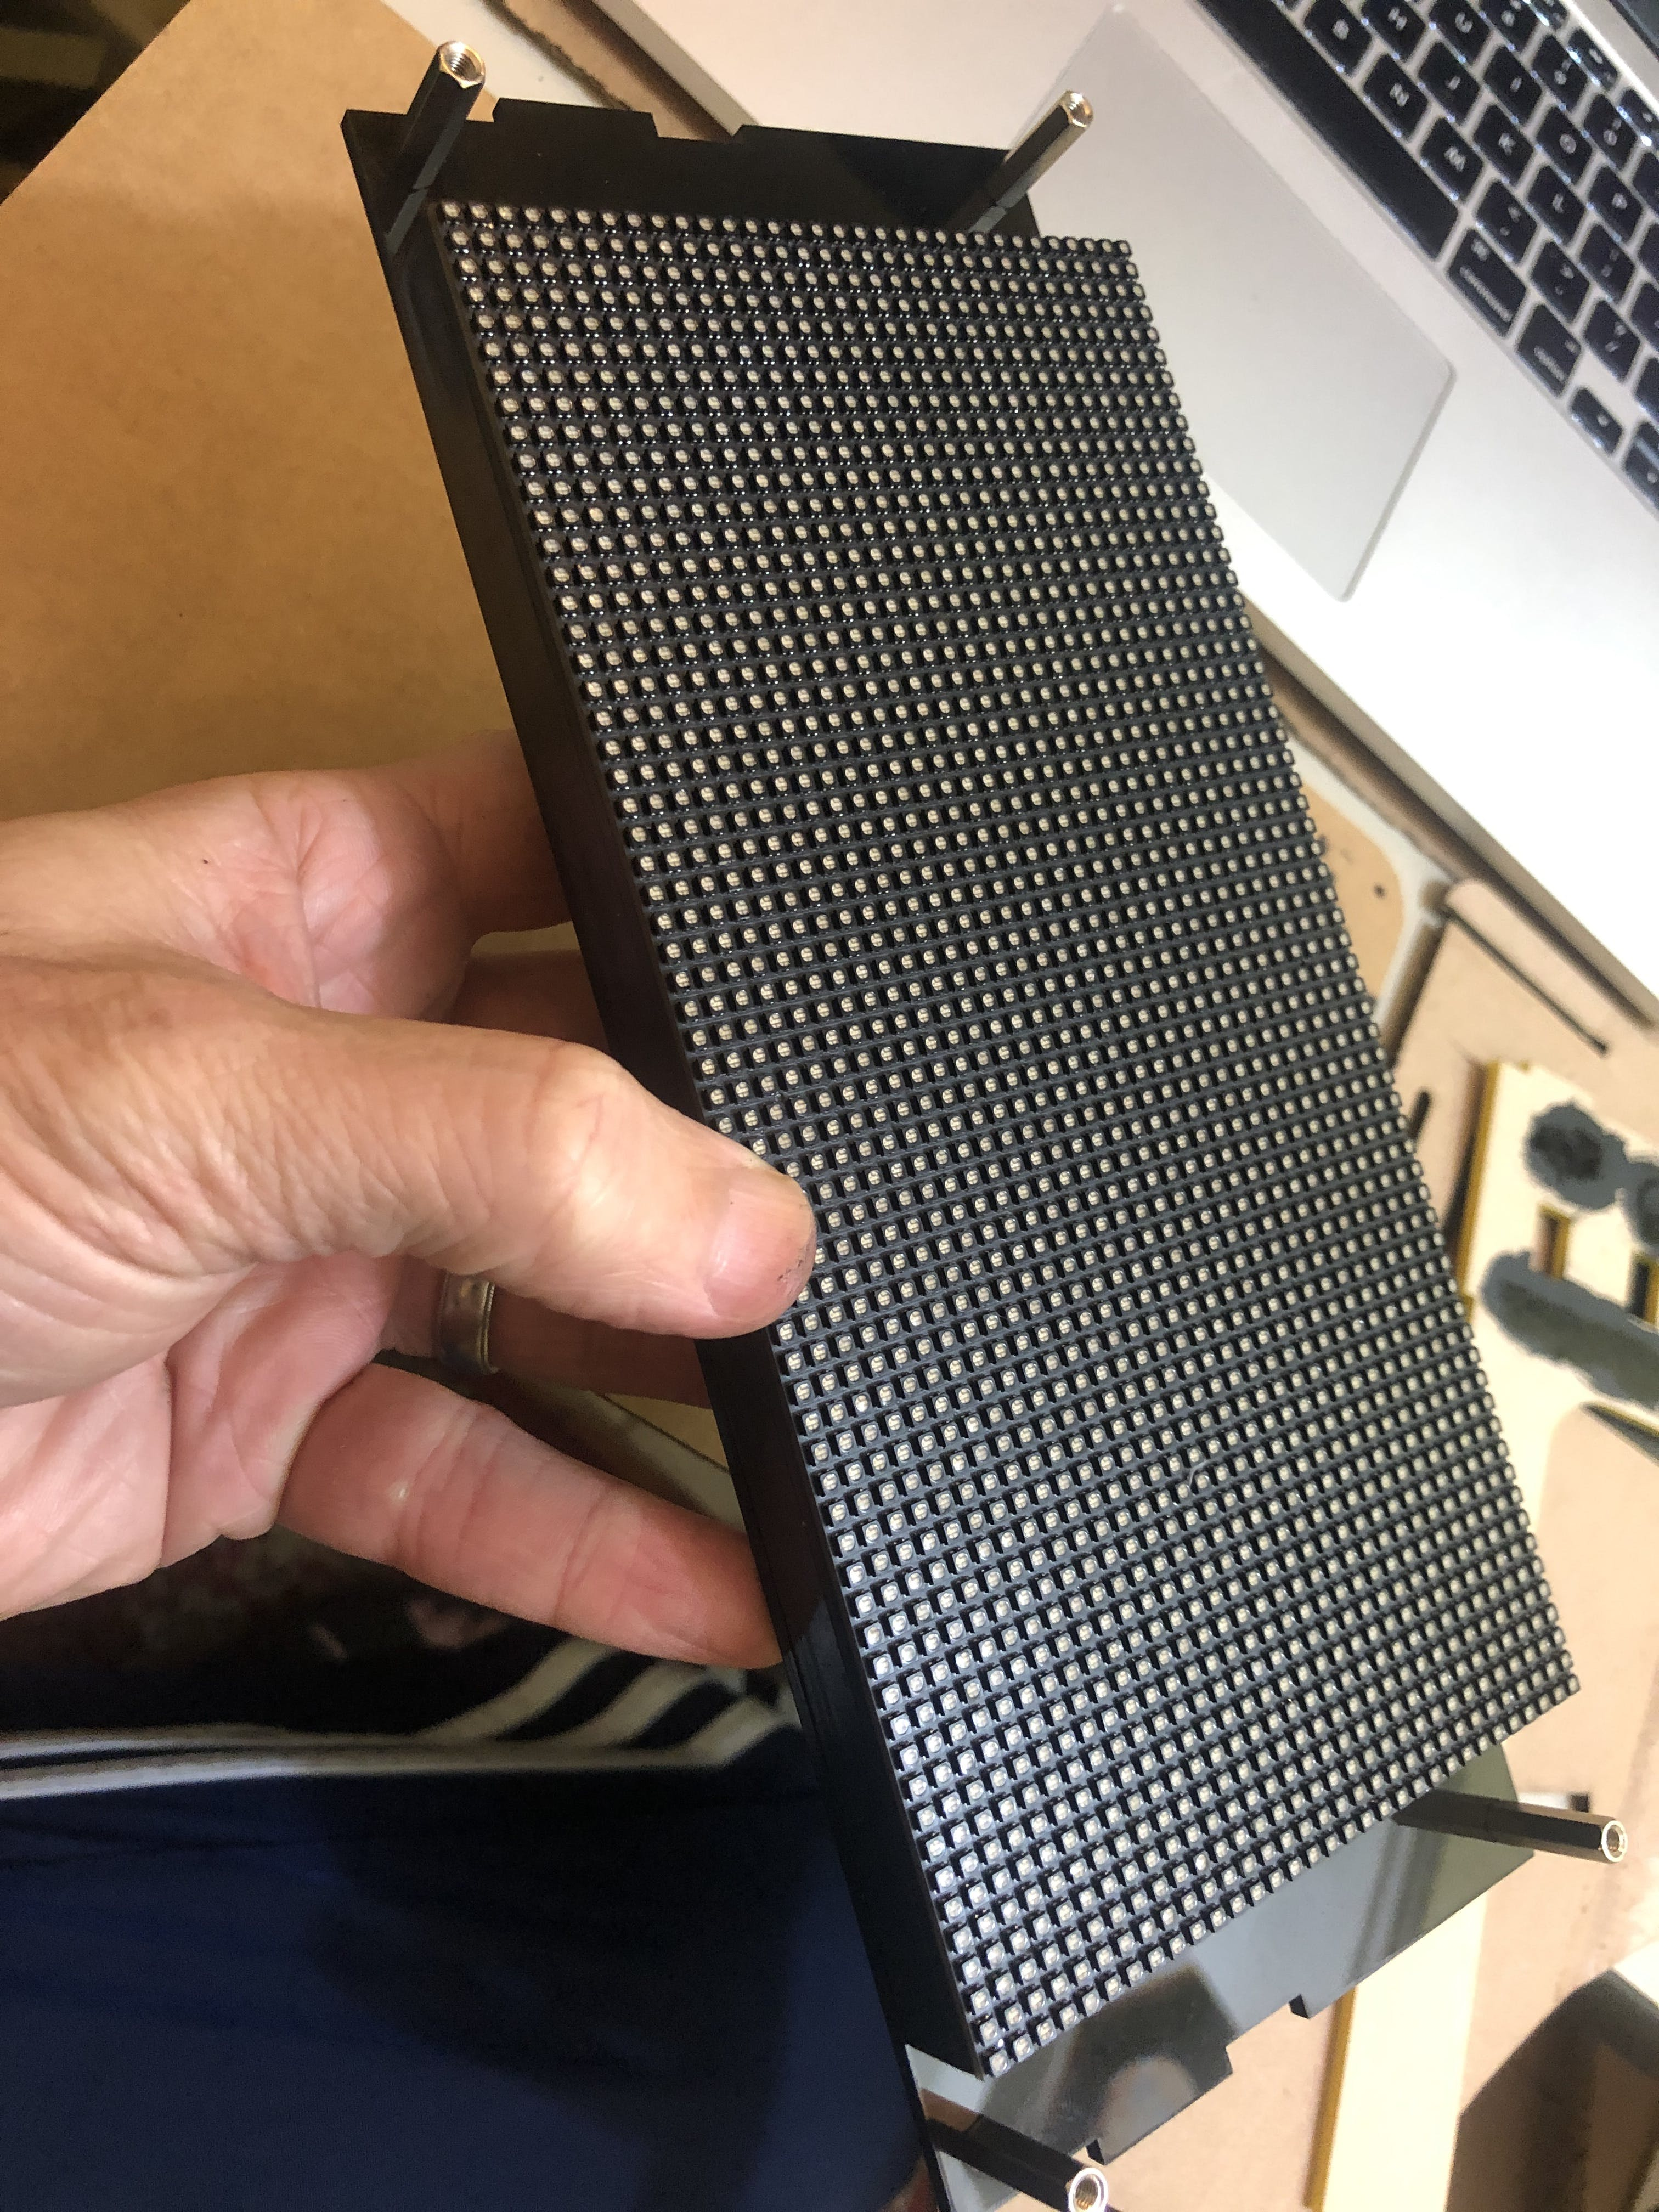 Front side of the LED matrix mounted